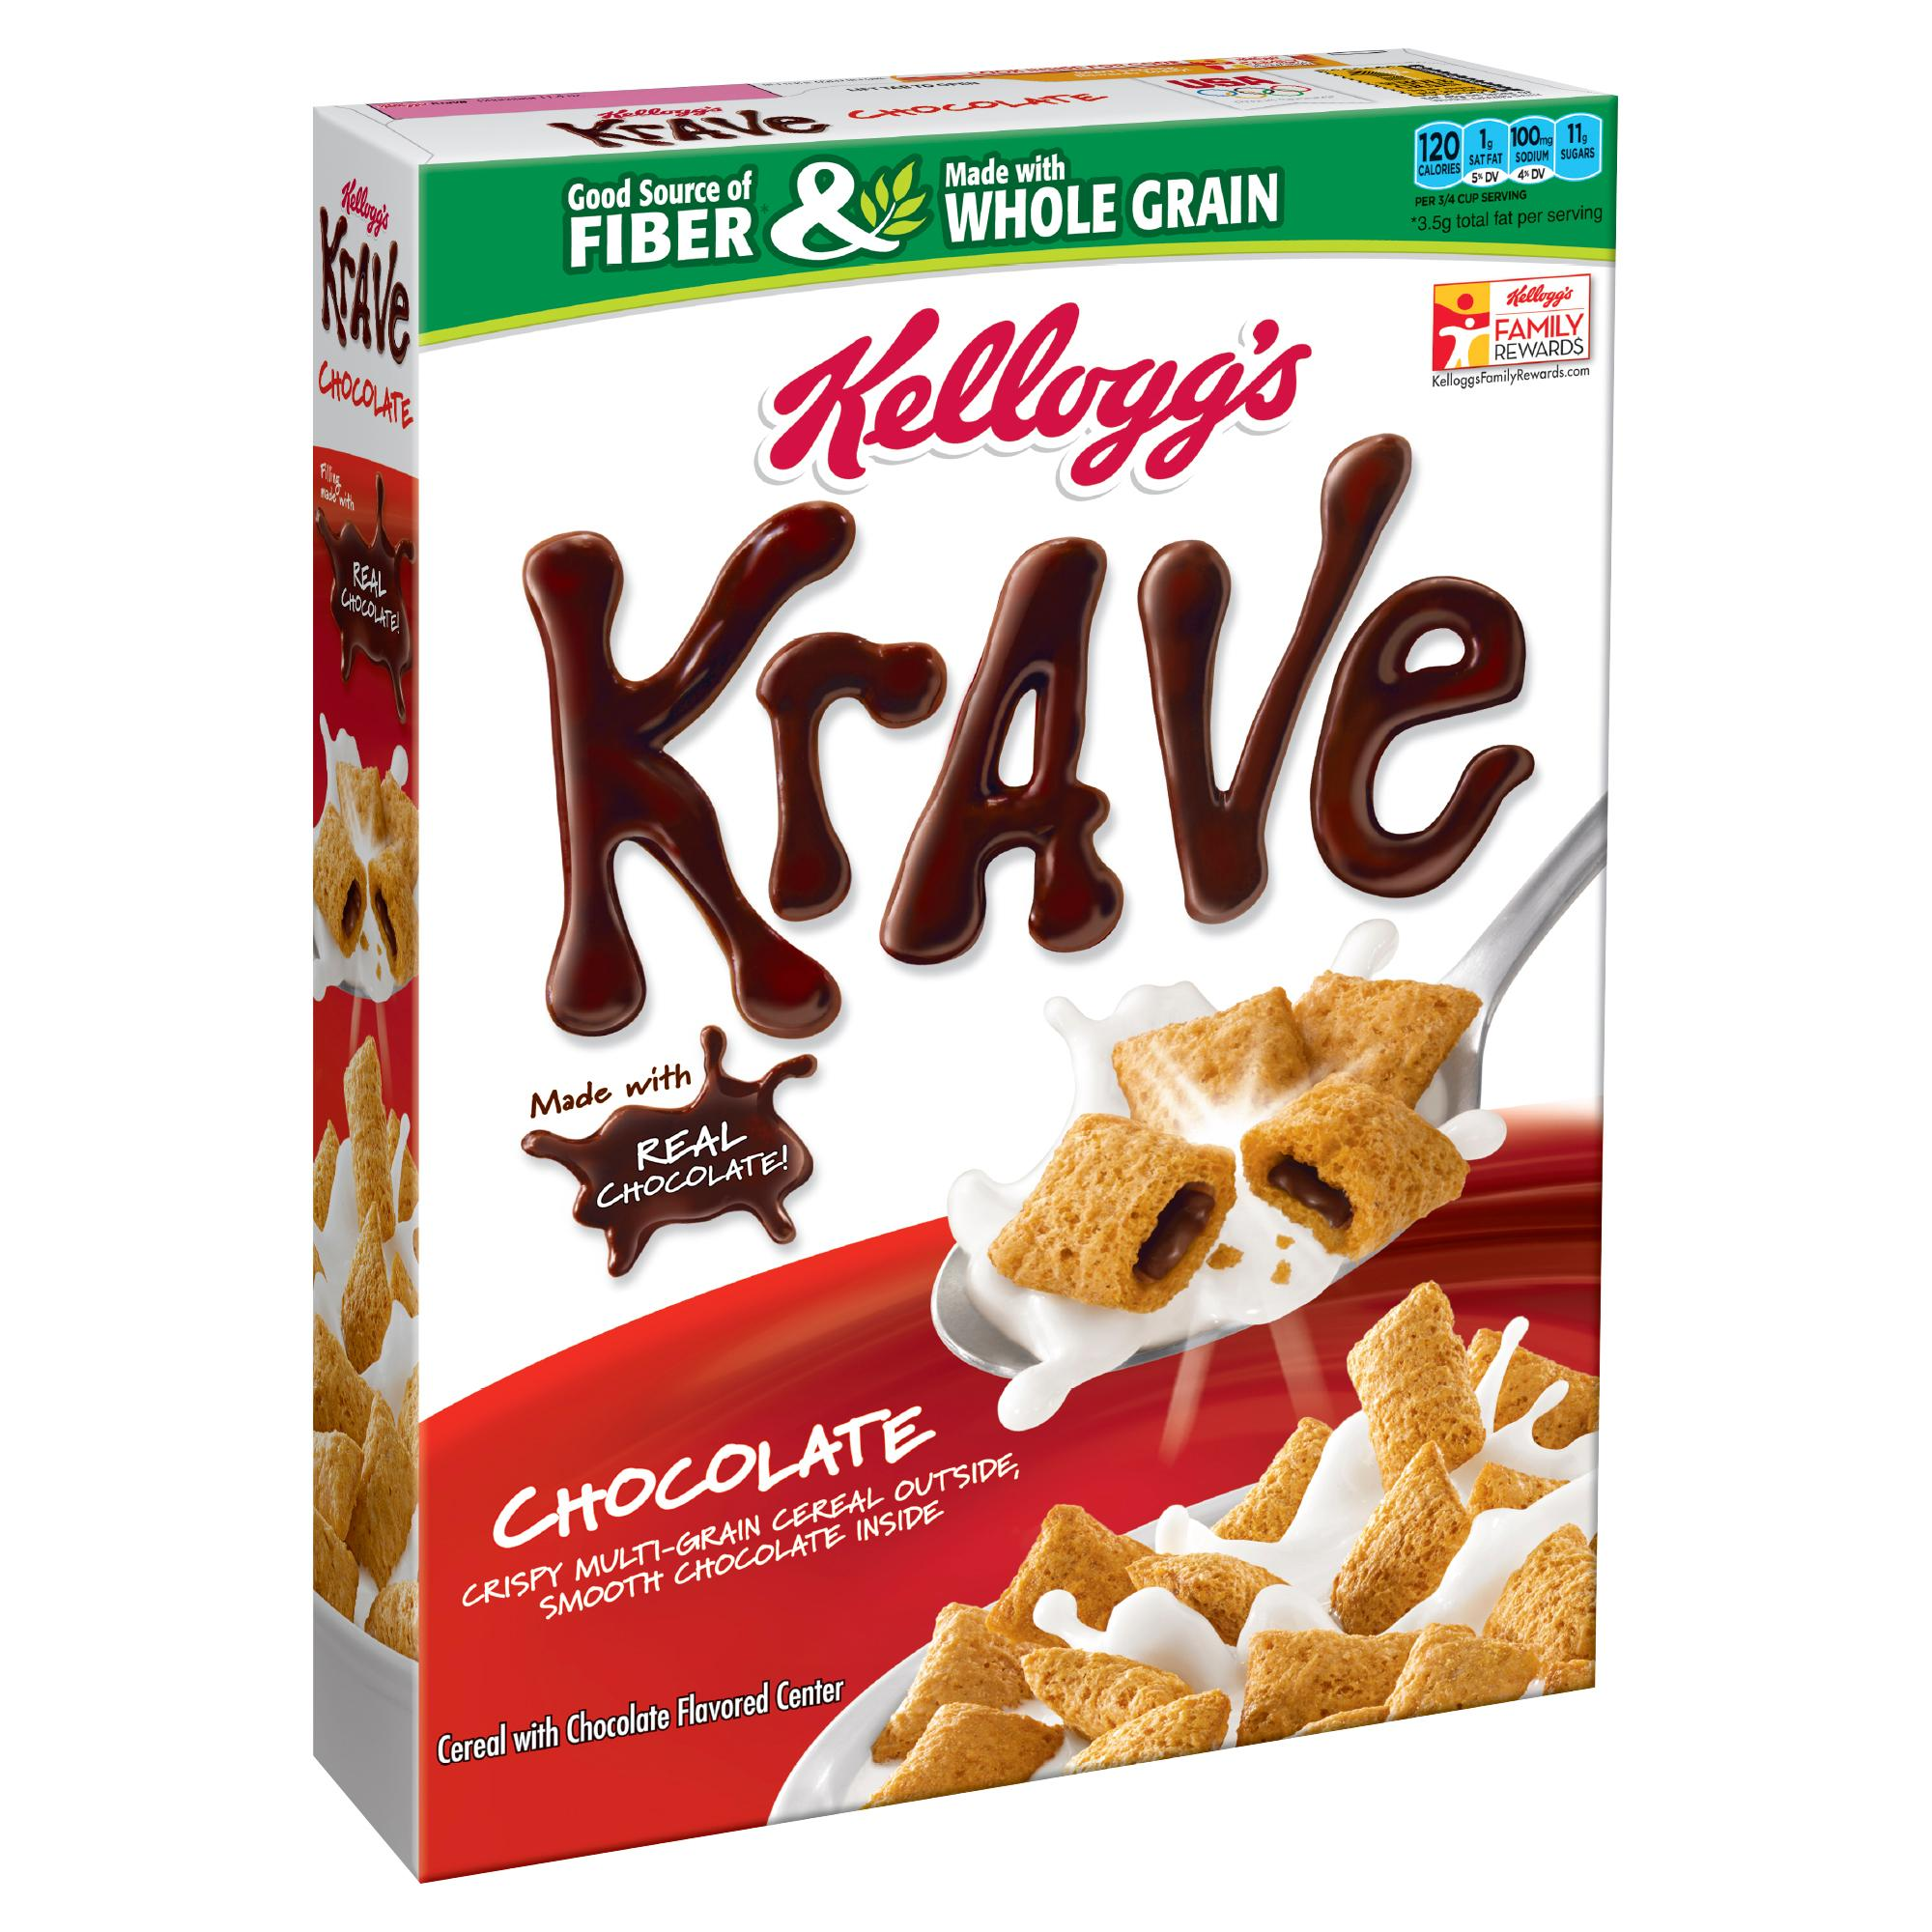 Watch 11 Best Brand Name Cereals for Weight Loss video